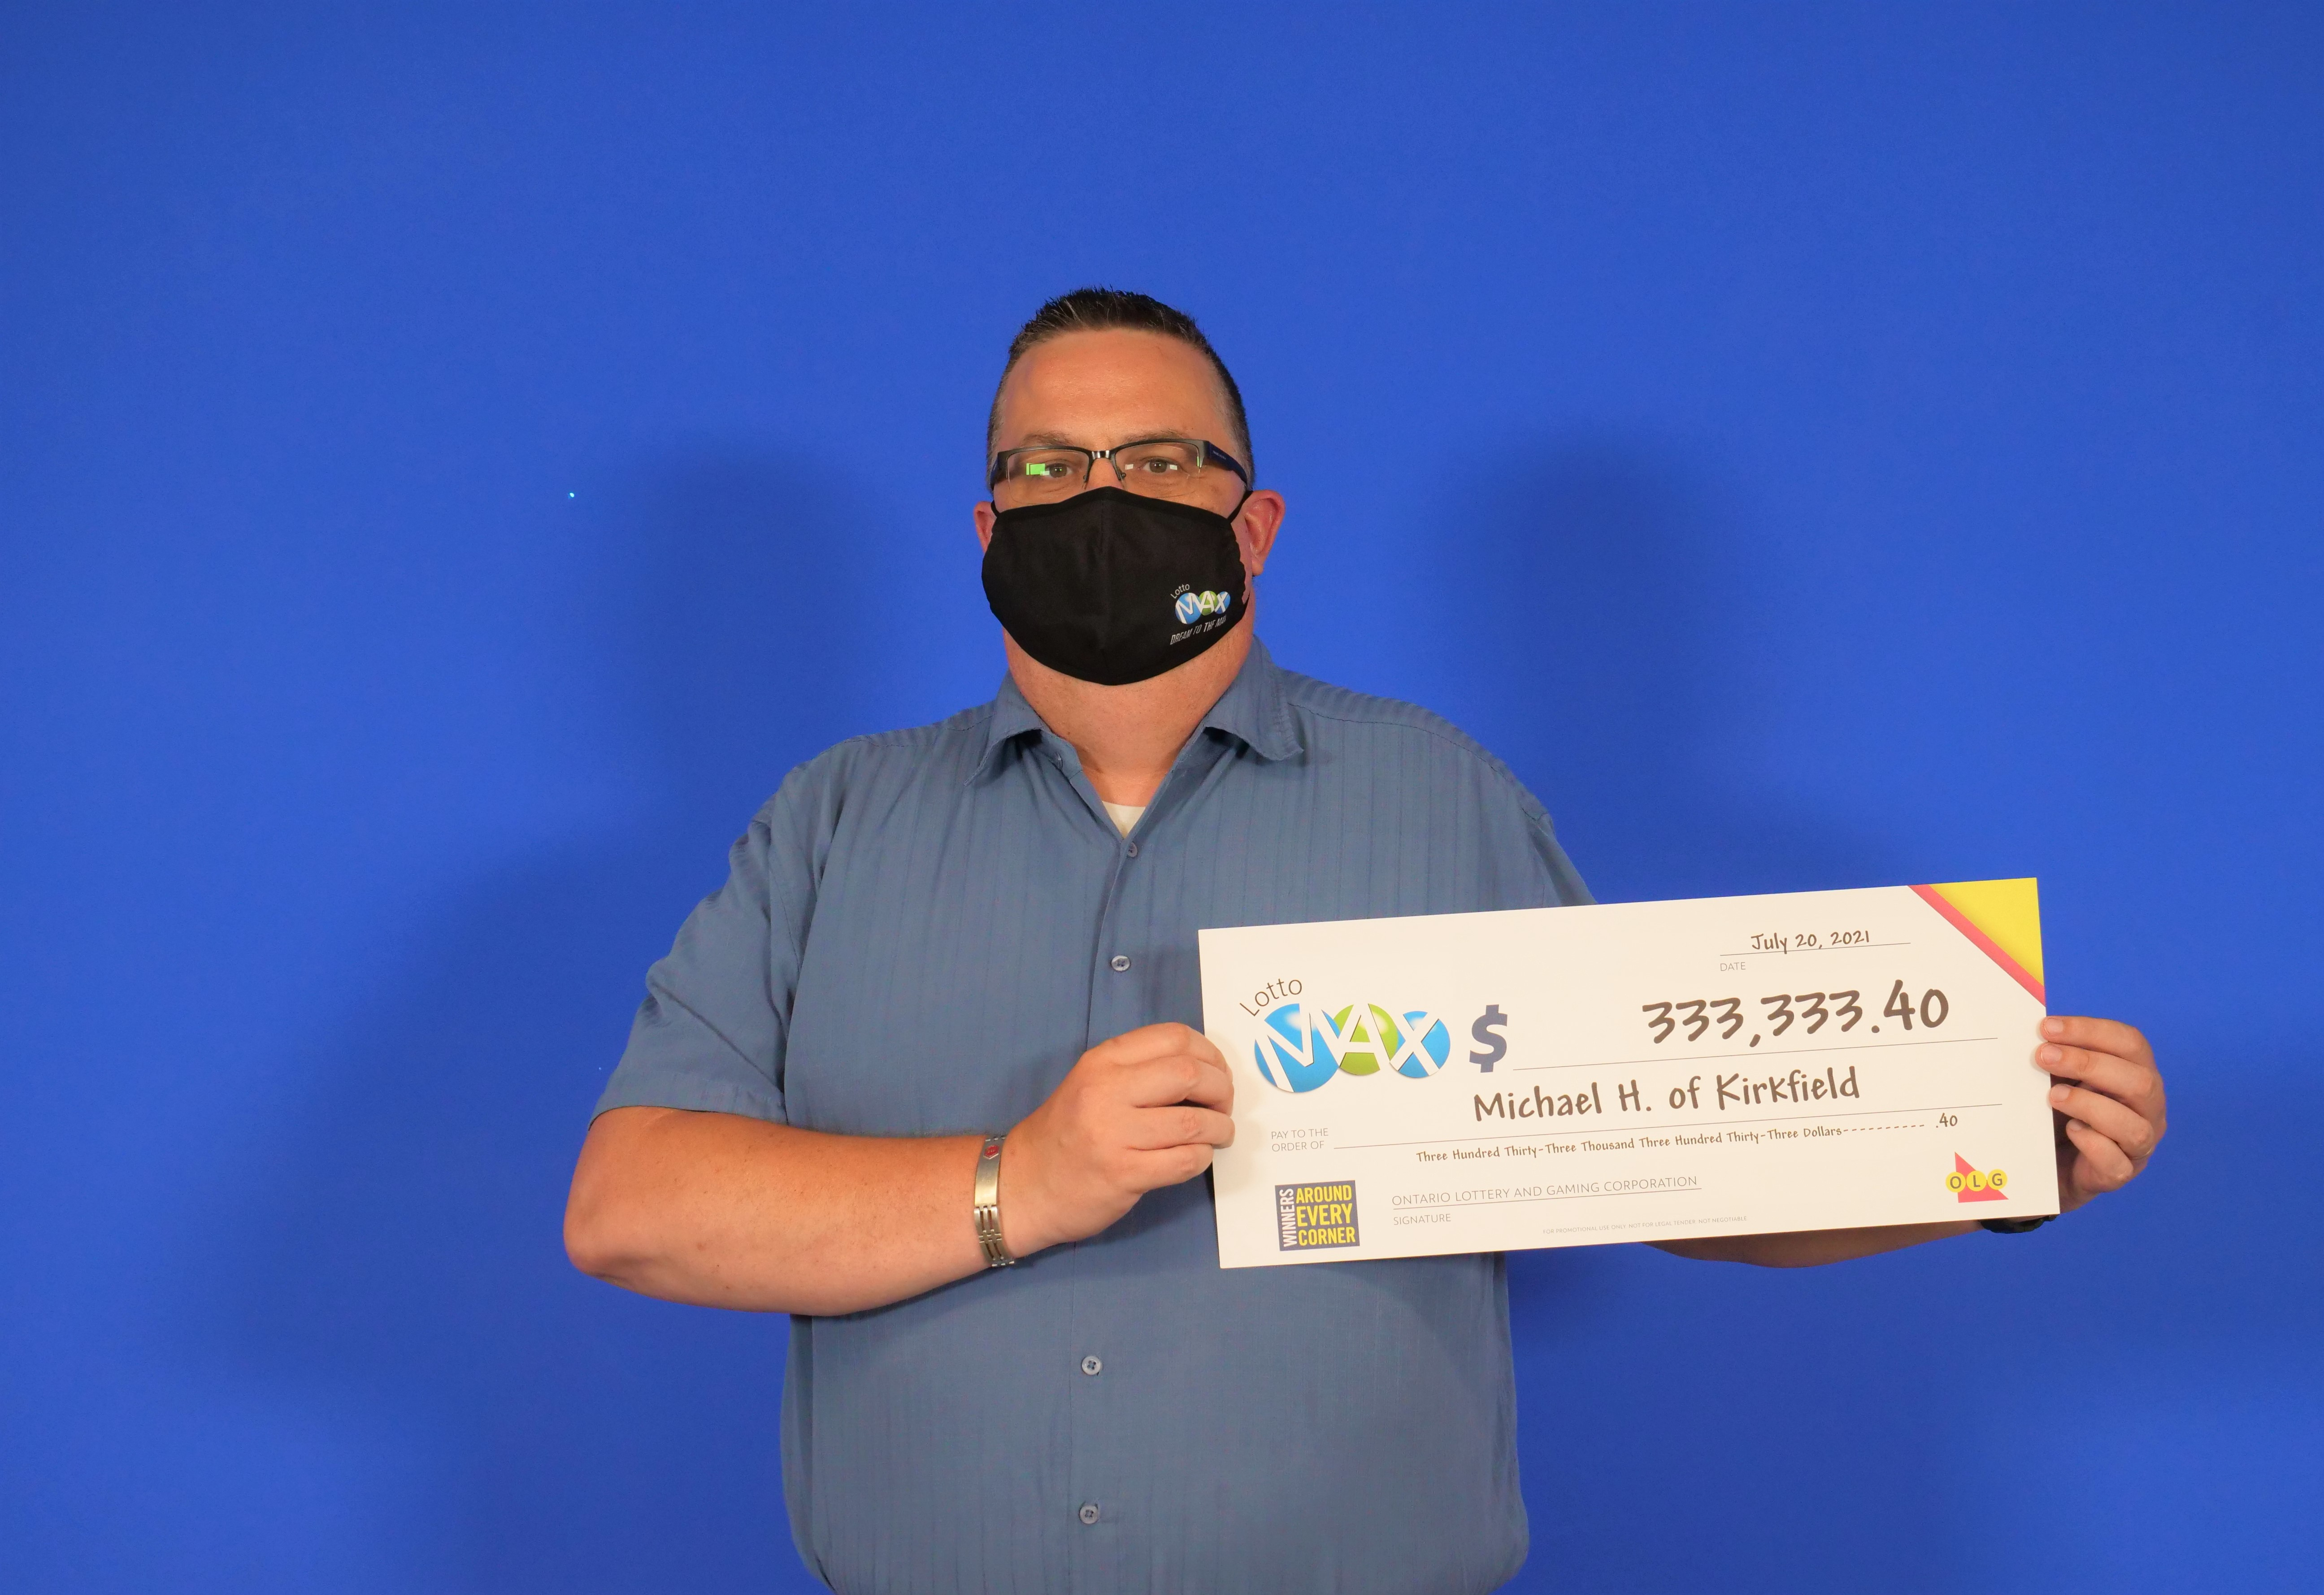 Kirkfield man wins more than $333,333 in lottery